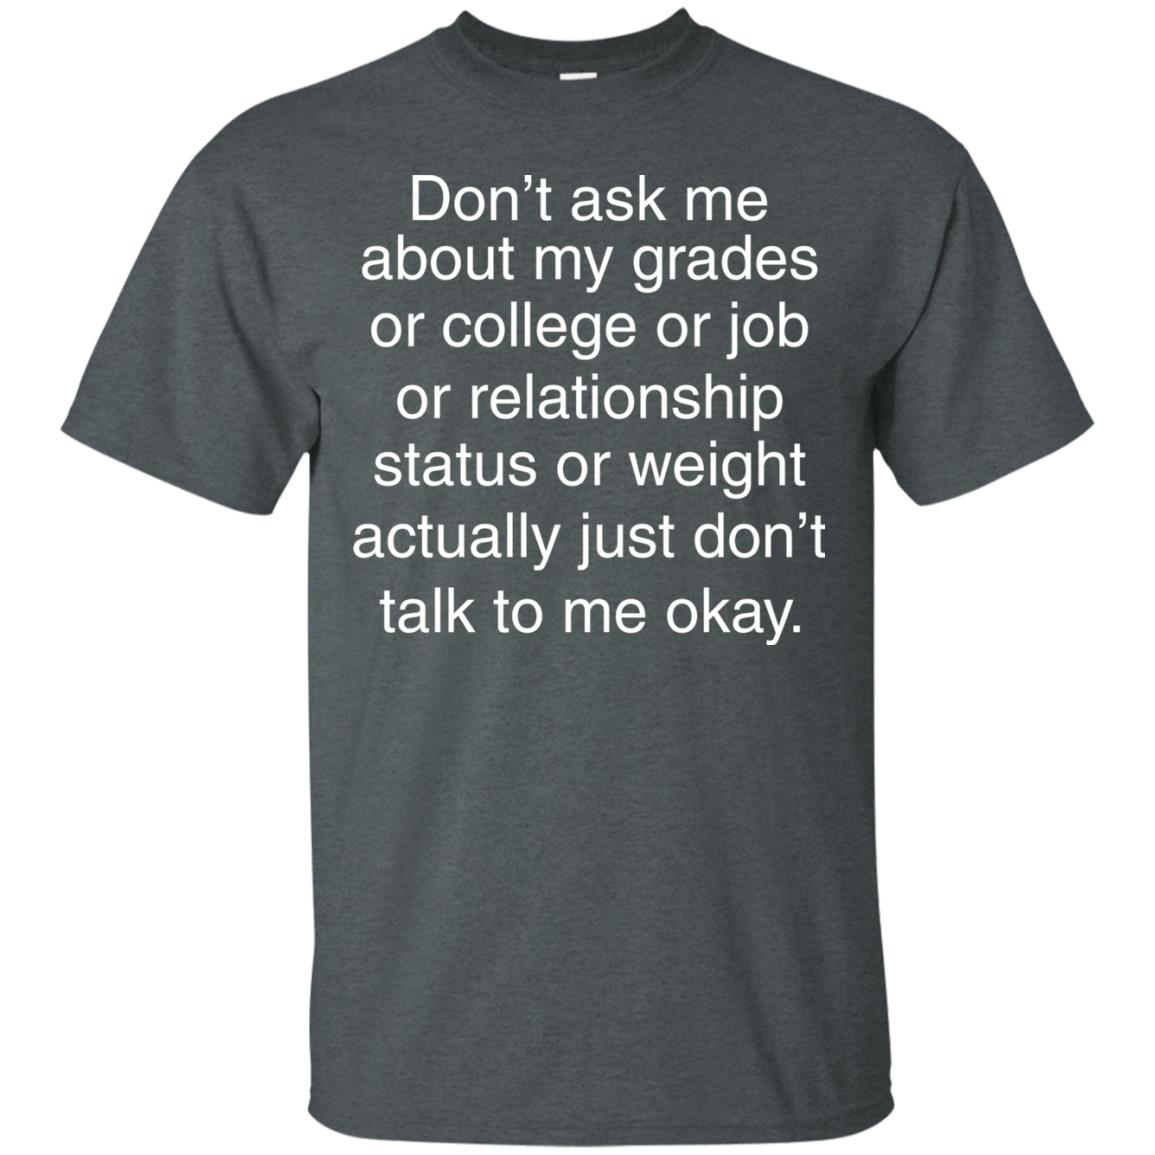 image 693px Don't ask me about my grades or college or job, just don't talk to me t shirt